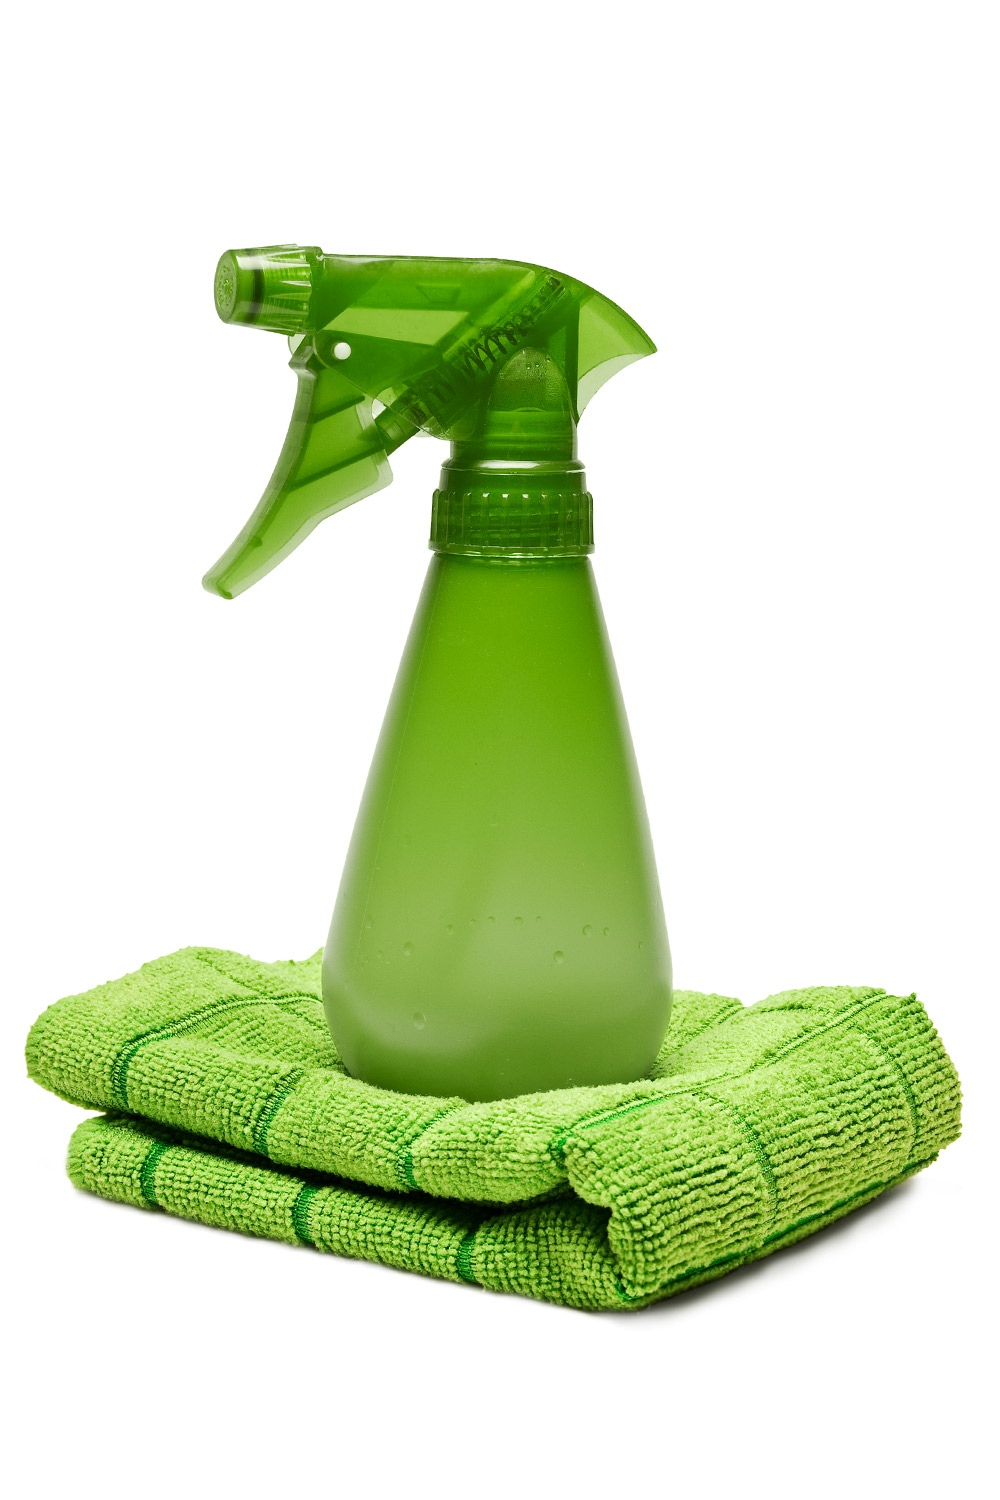 To make your own window cleaner, add 1/2 to 1 cup of vinegar to 1 gallon of water